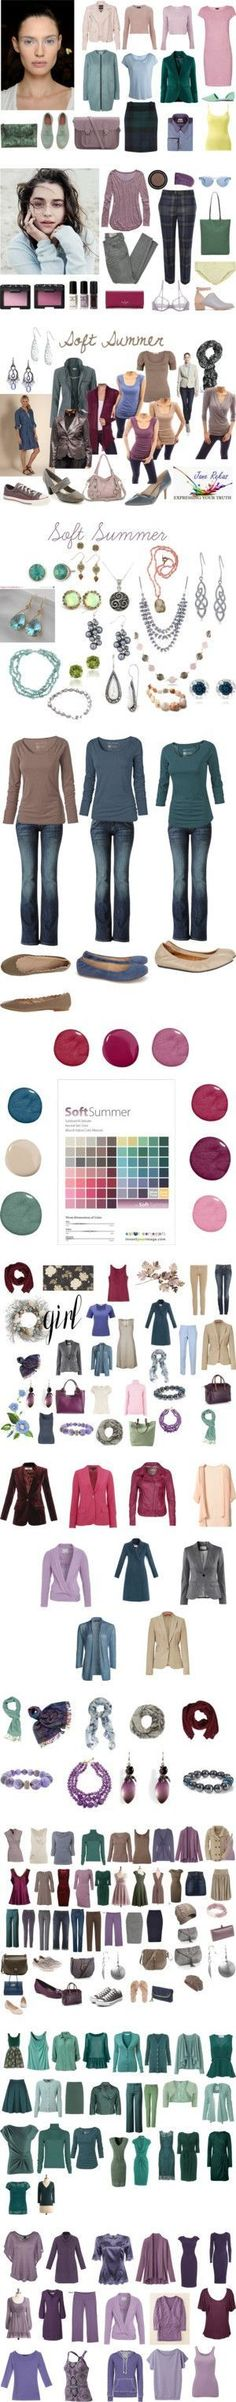 Soft Summer personal coloring, vol. III by in-vero-pulcritudo on Polyvore featuring мода, Veda, A.L.C., Topshop, Paul Smith, Chicnova Fashion, Vero Moda, Pieces, ONLY and Grenson